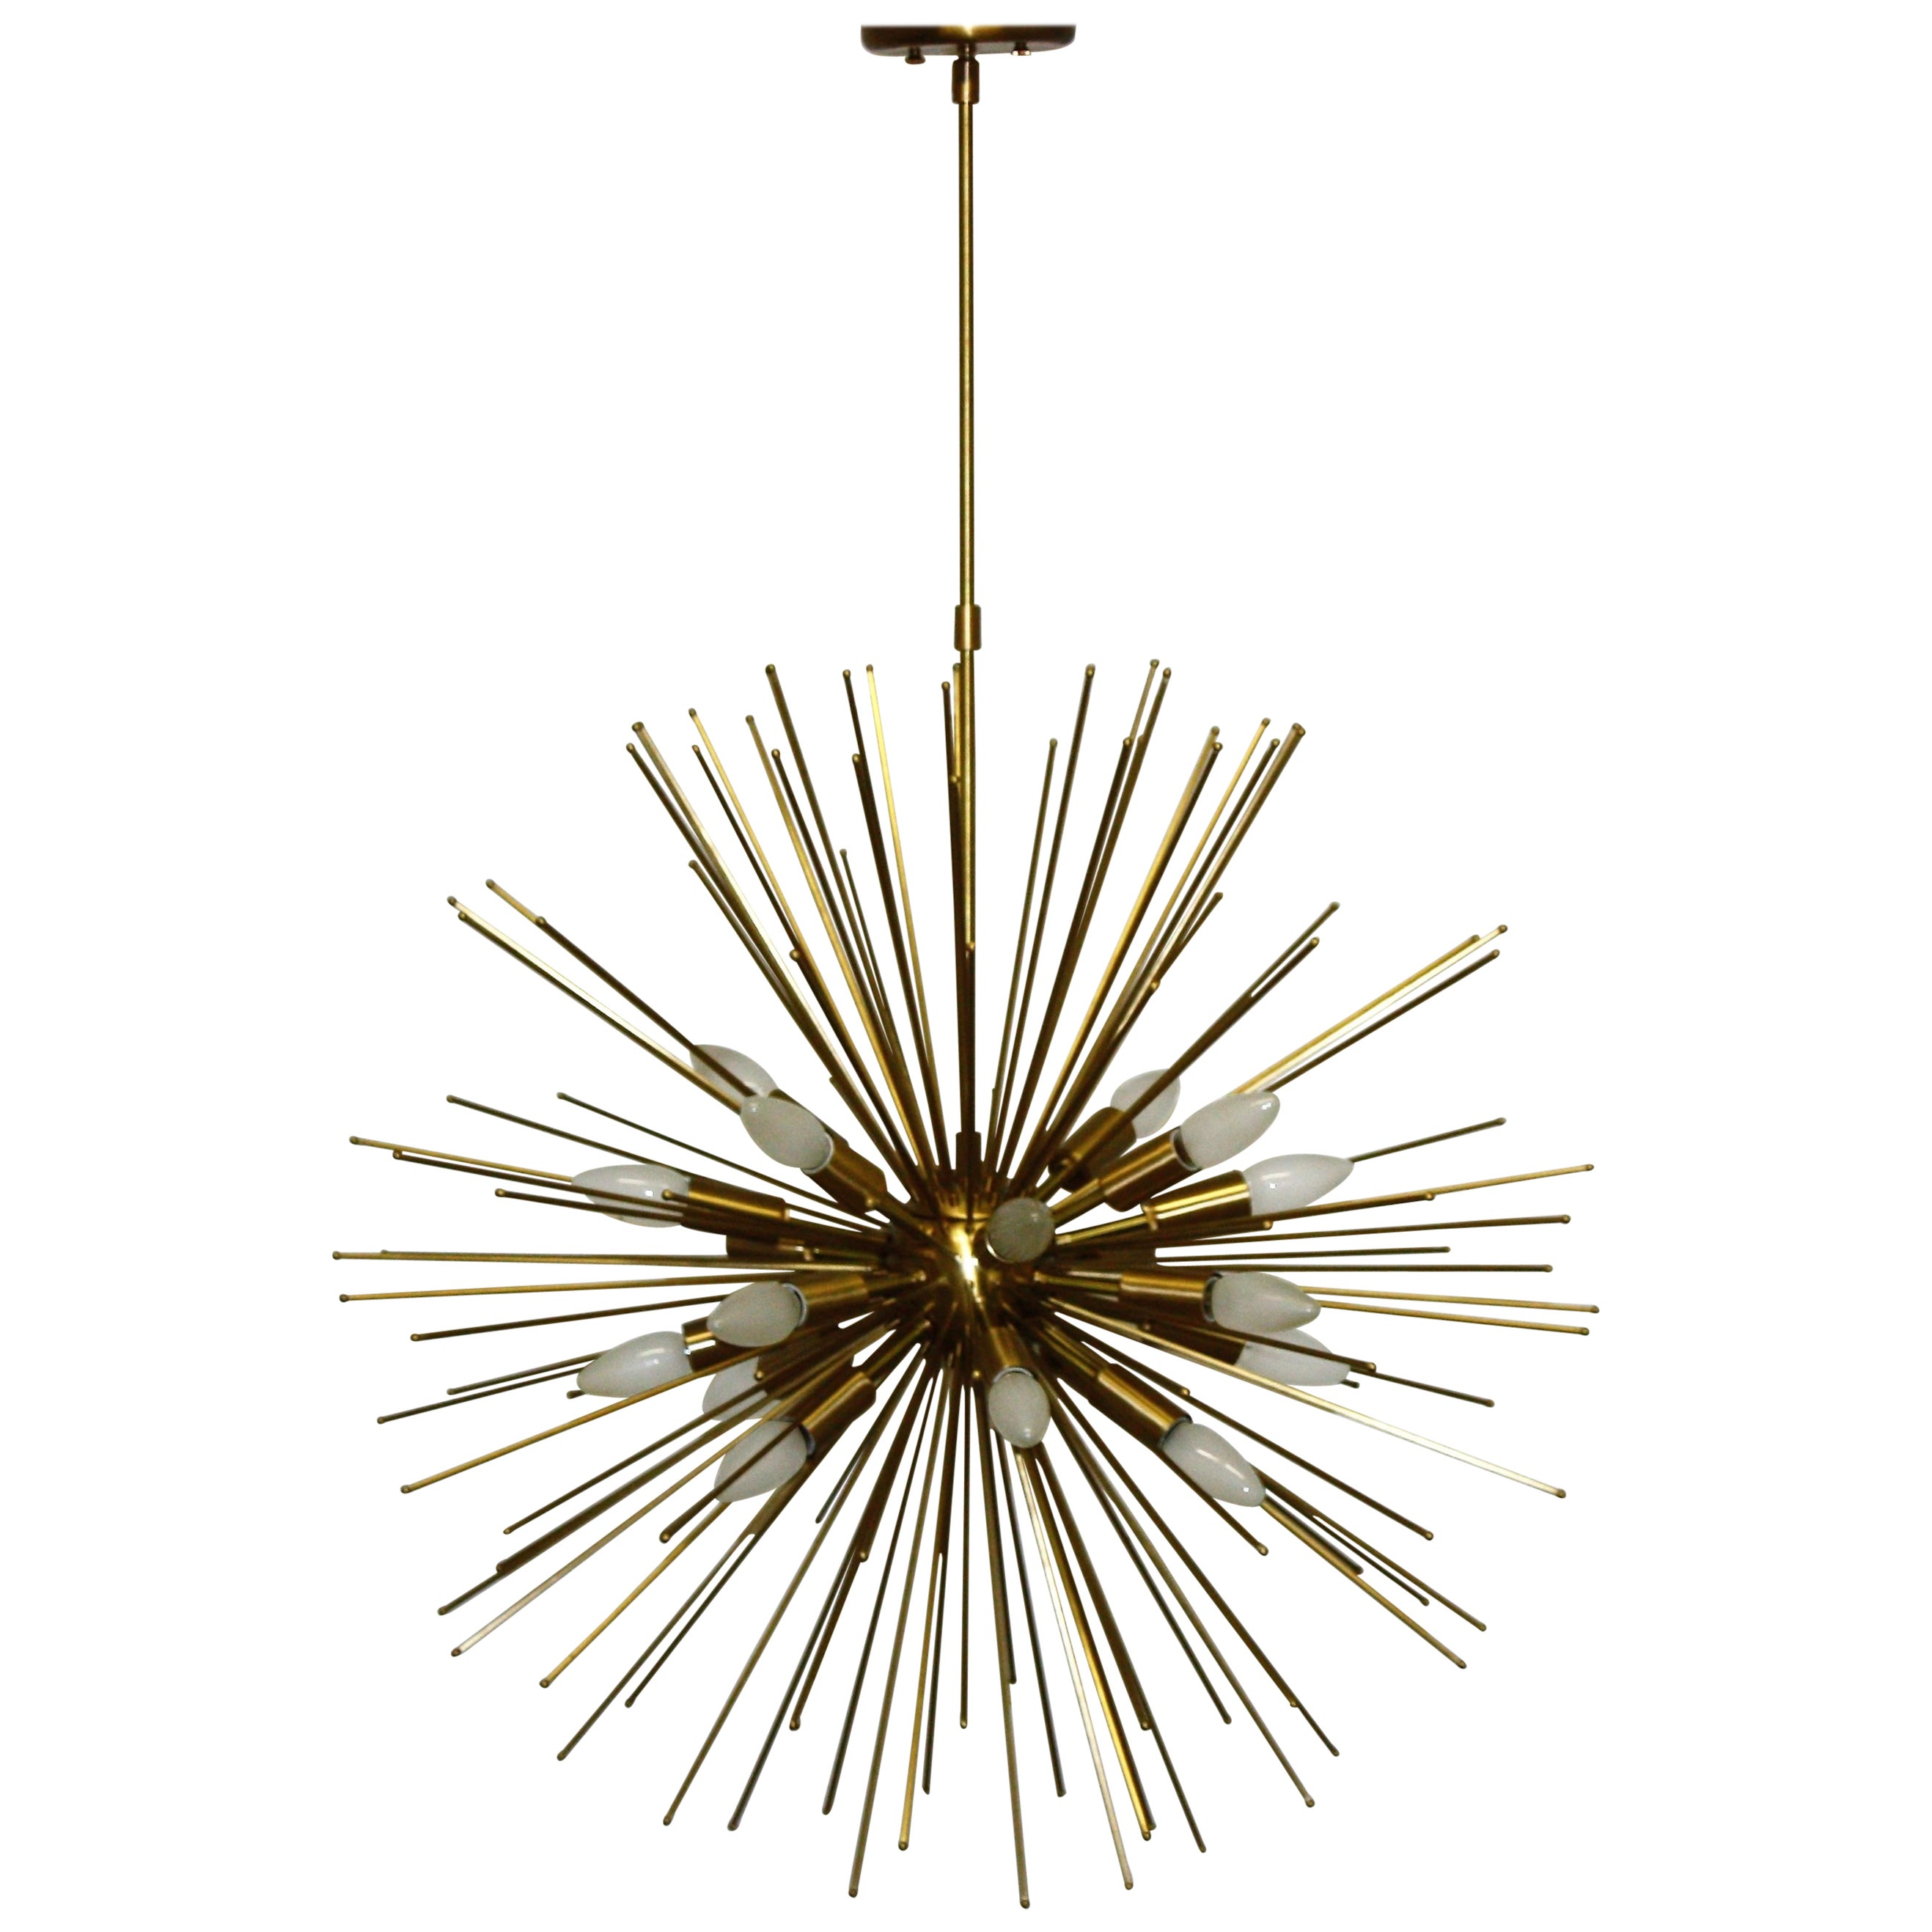 and your offering pin fixture to lighting urchin statement style most is chandelier beaded color personalized pop our the largest impactful chandeliers lights tastes